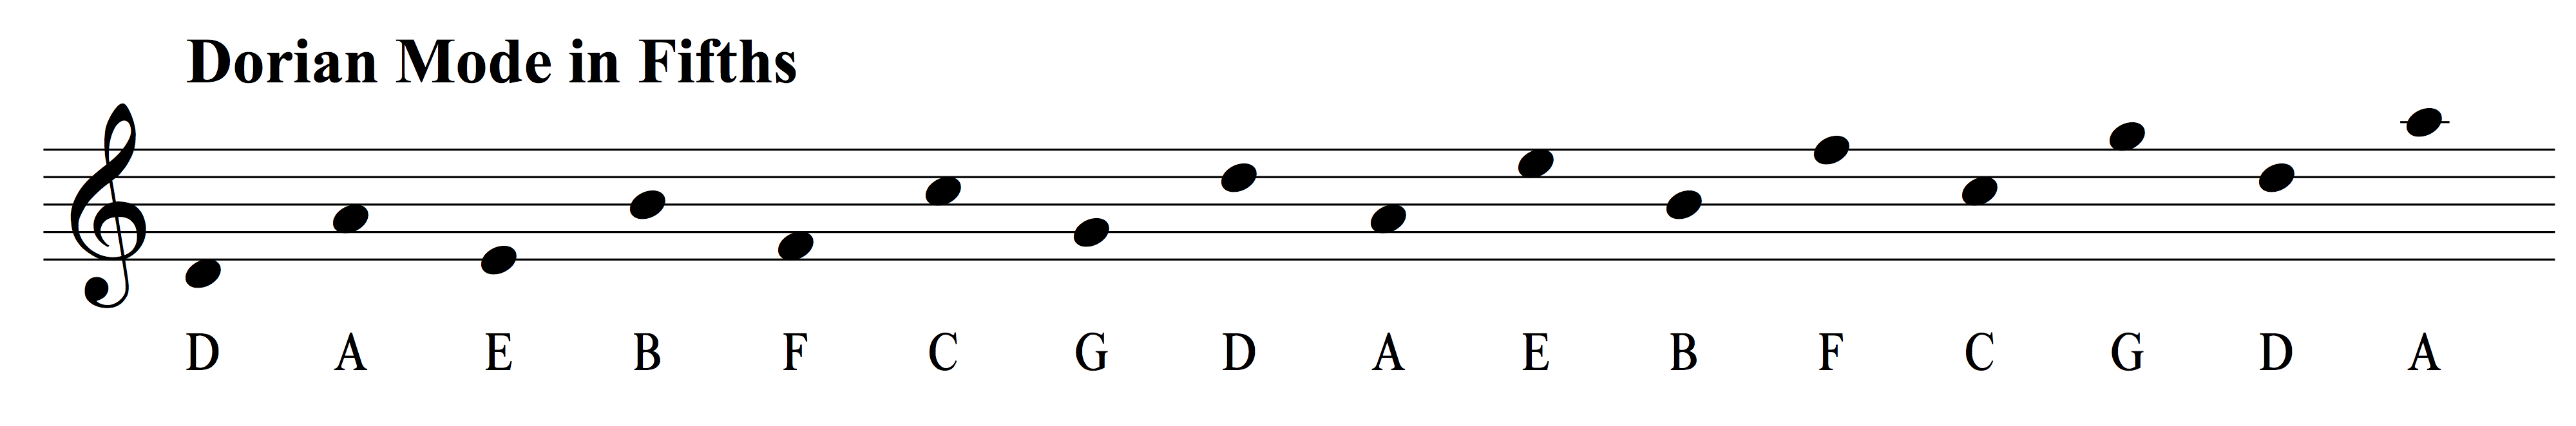 The Ultimate Guide to the Dorian Mode | Musical U